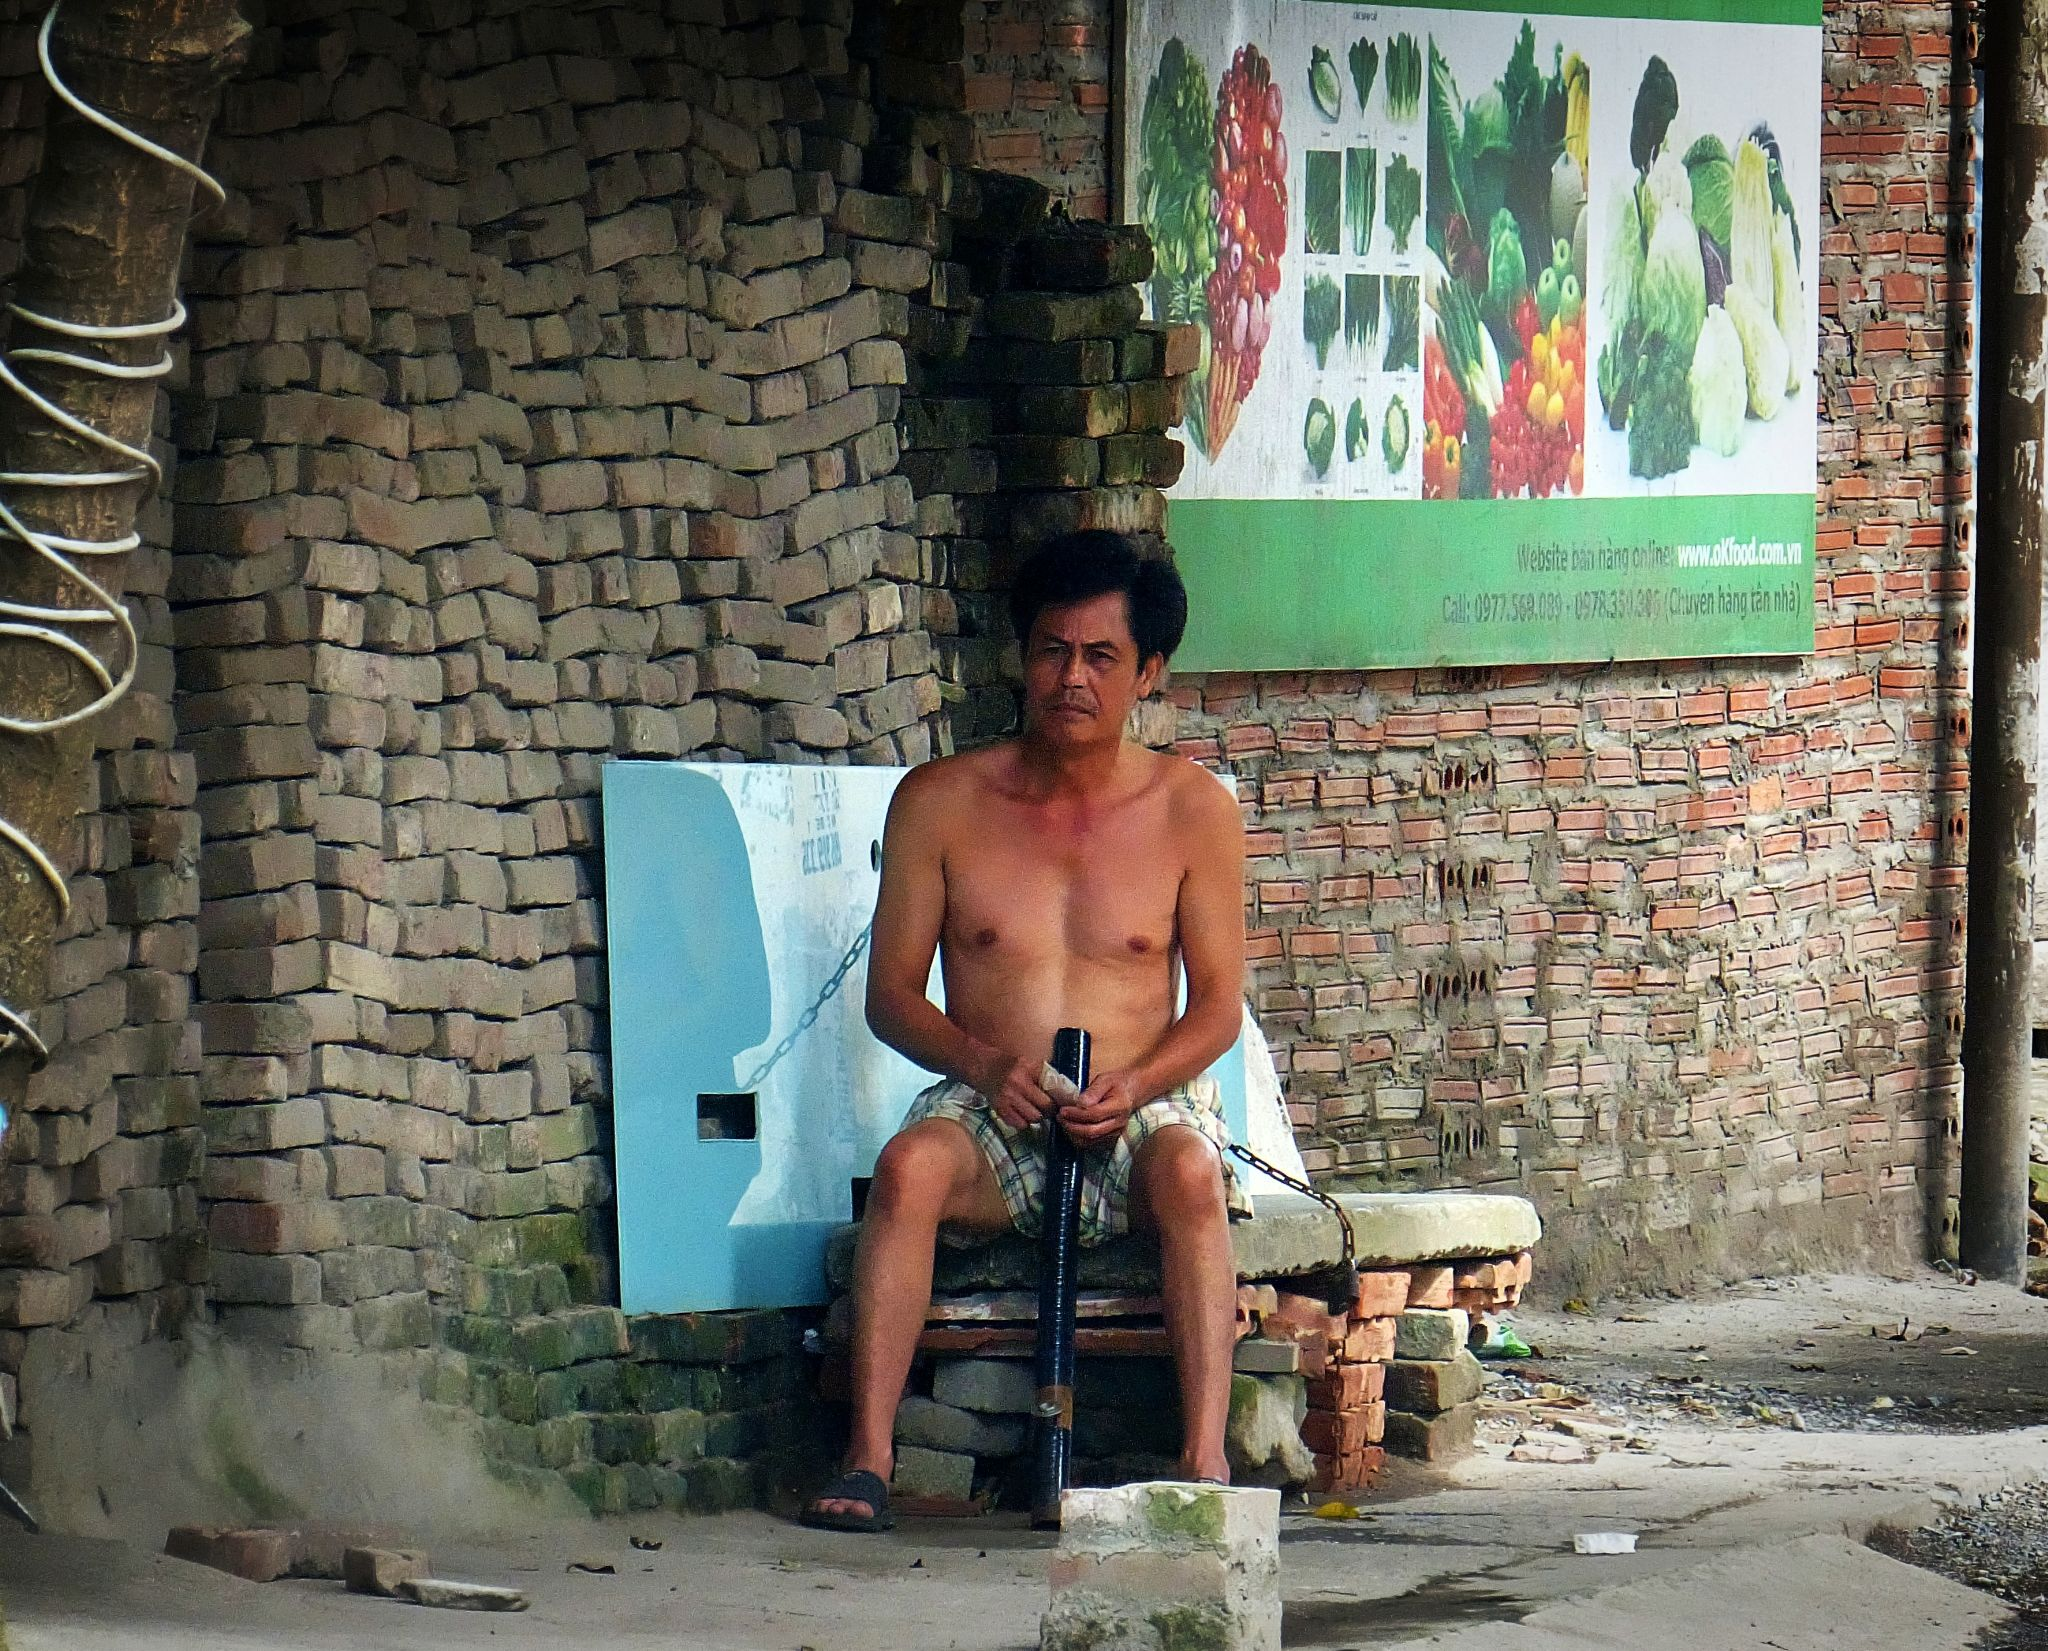 Hanoi  .  Water pipe smoker by marcosarli